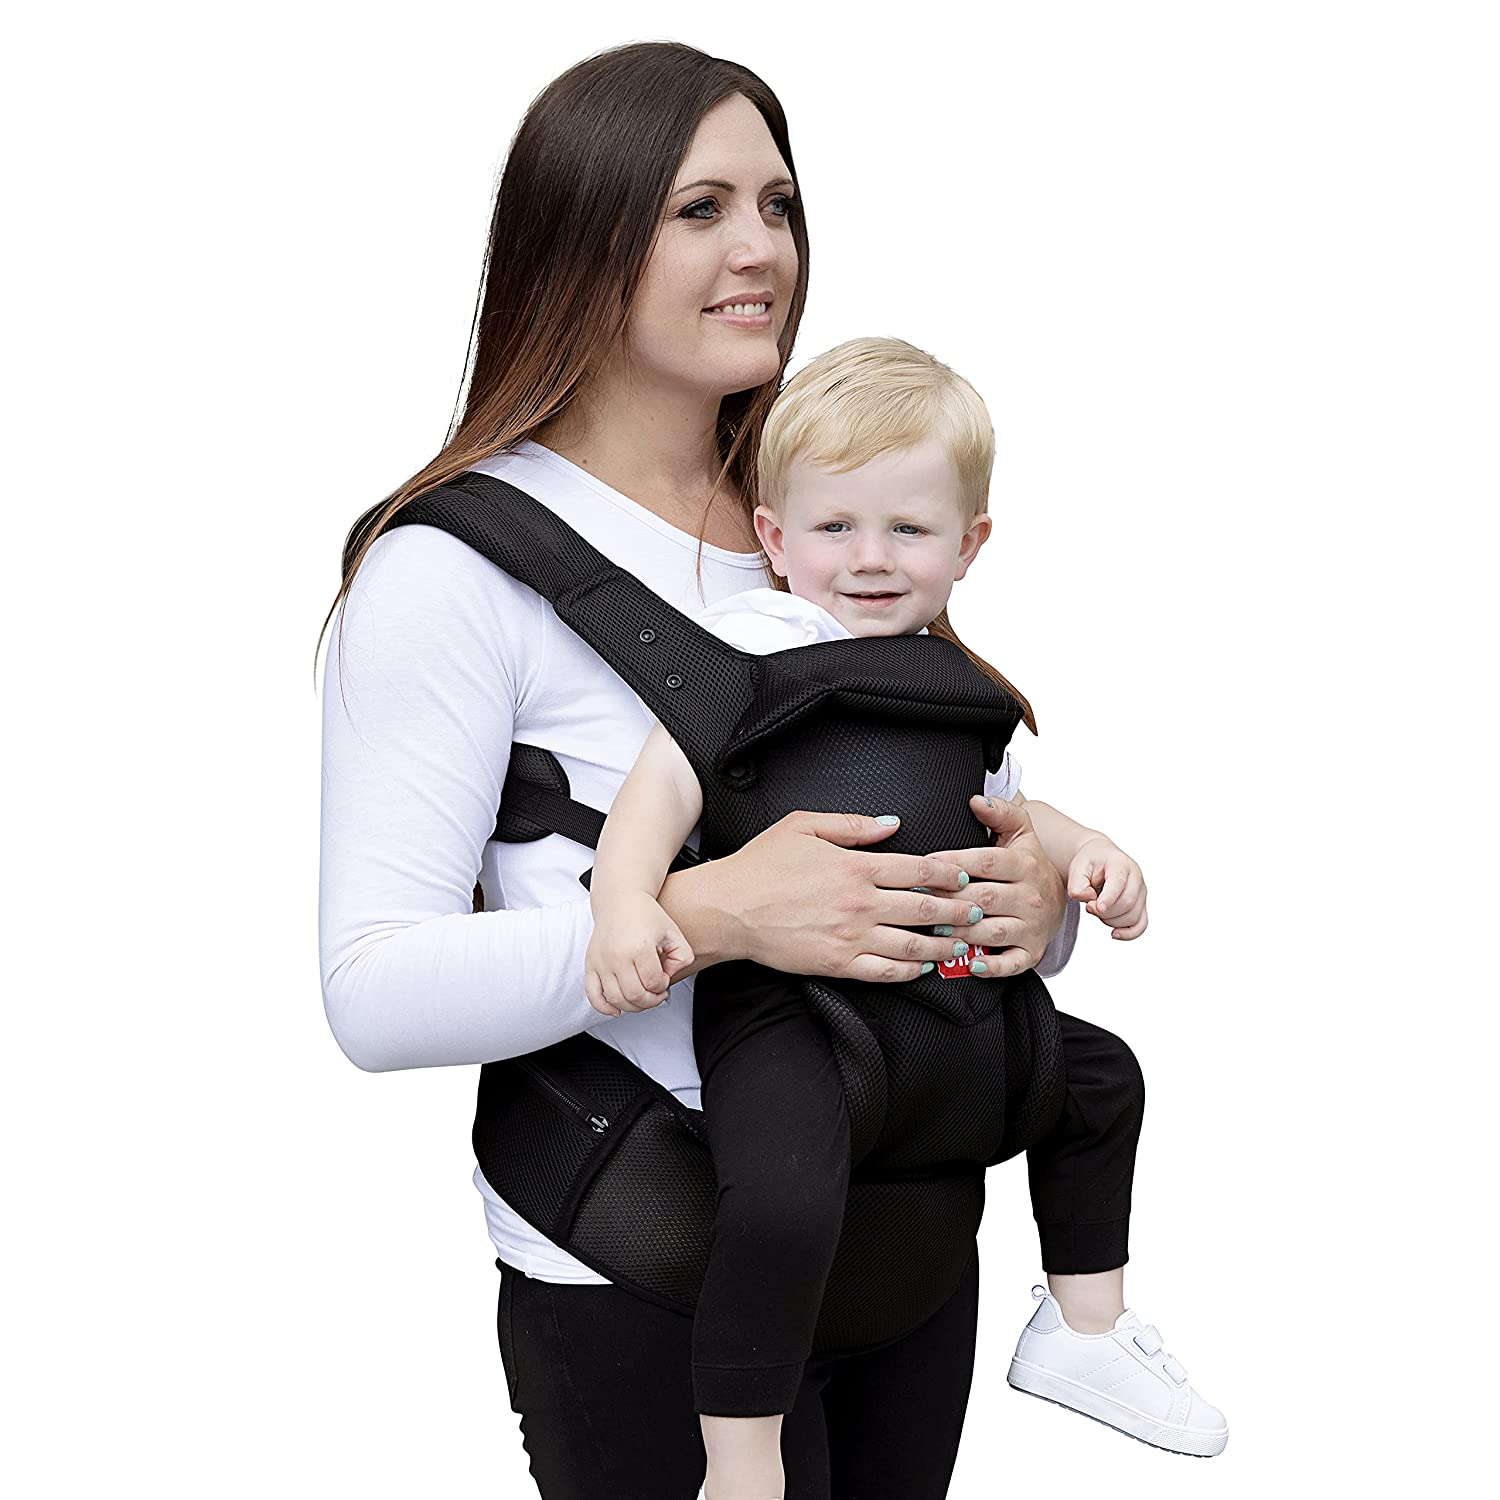 Baby Carrier - Backpack Baby Soft Carrier Black Baby Holder Made From Breathable Cooling Mesh Fabric - Infant and Toddler Carrier with Head and Neck Support, Padded Shoulders, Pockets, and Waist Strap